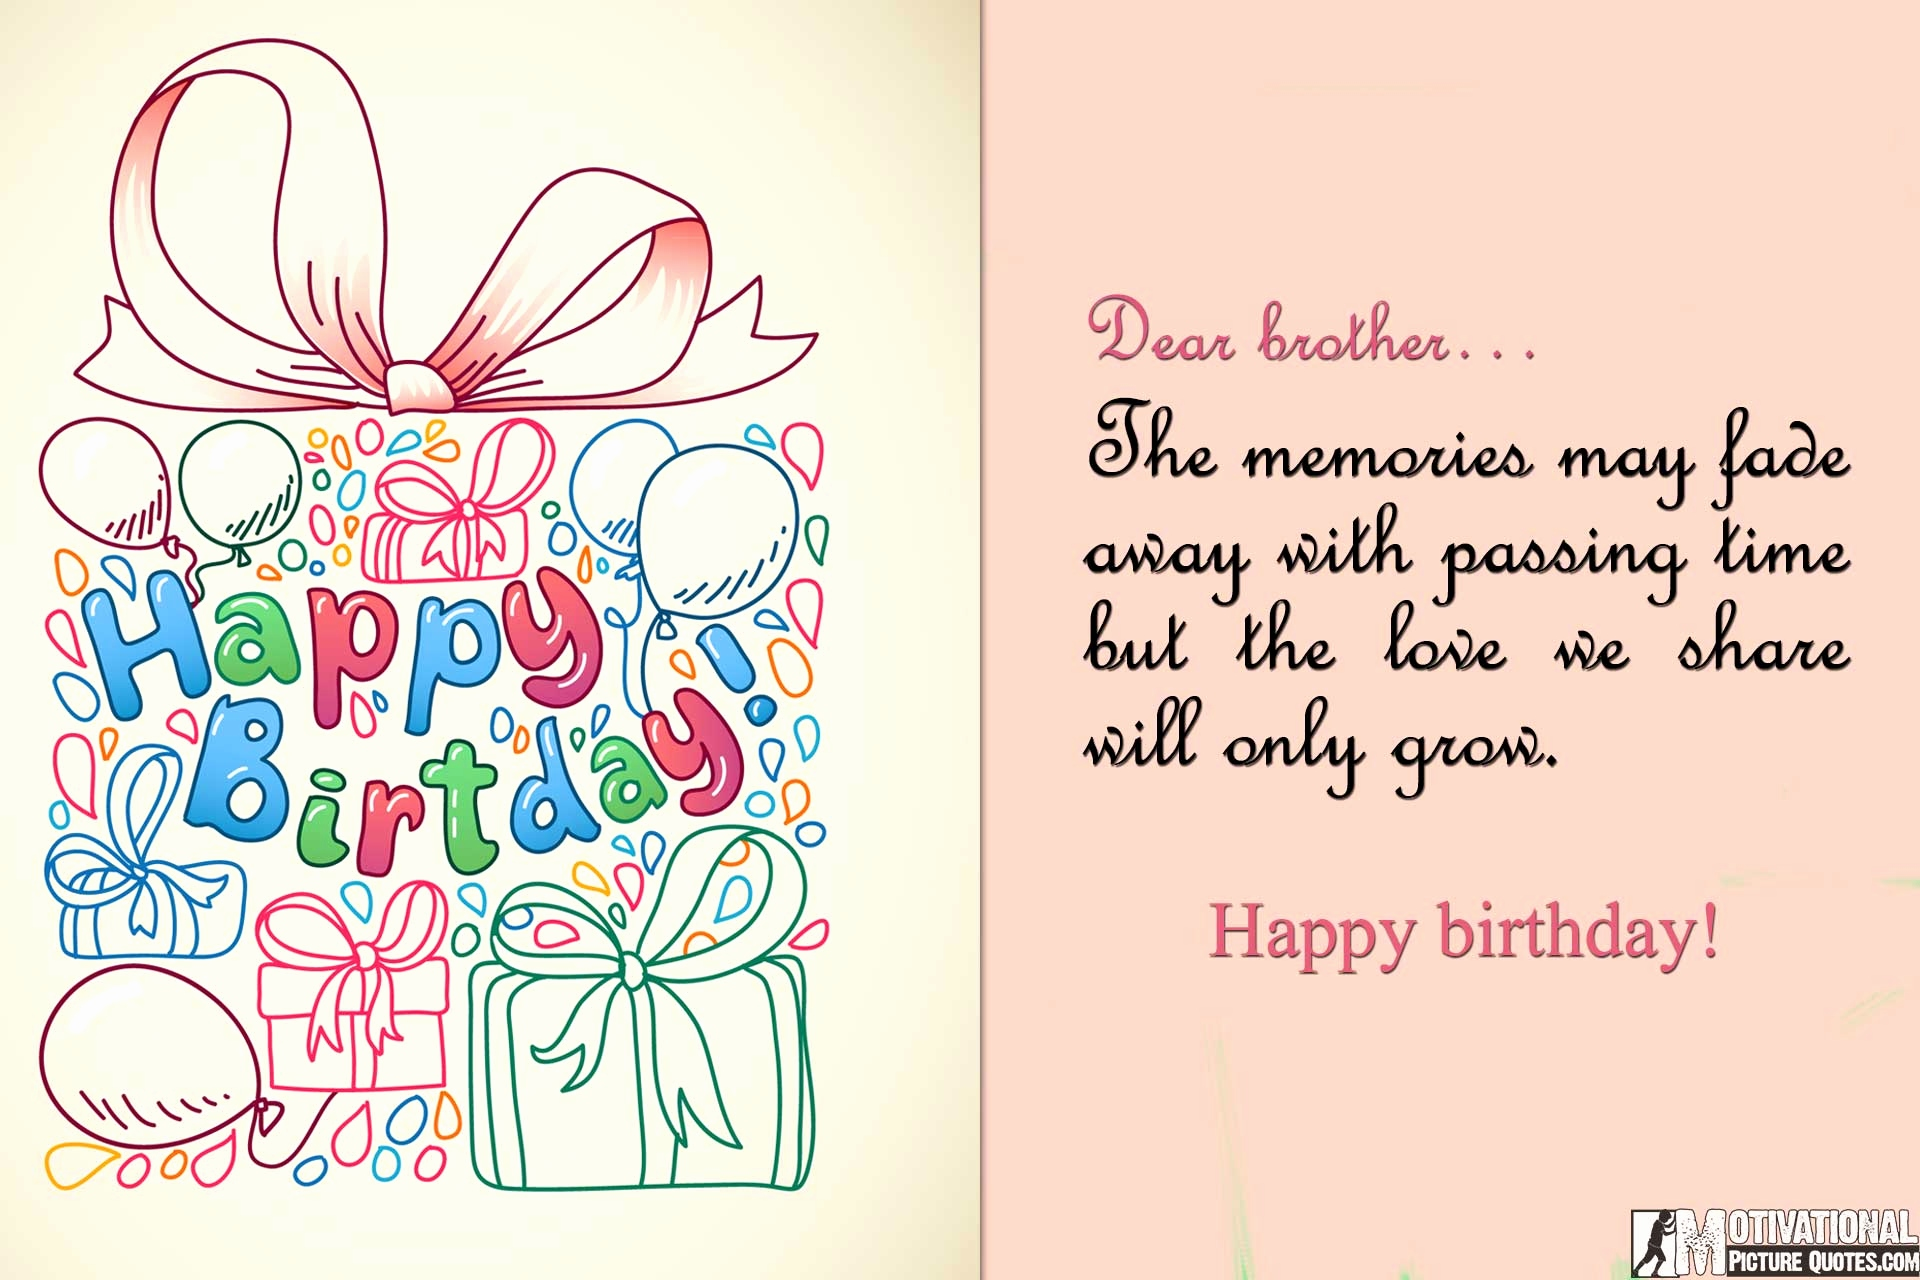 60th birthday card messages ; 60th-birthday-card-messages-inspirational-birthday-quotes-for-brother-of-60th-birthday-card-messages